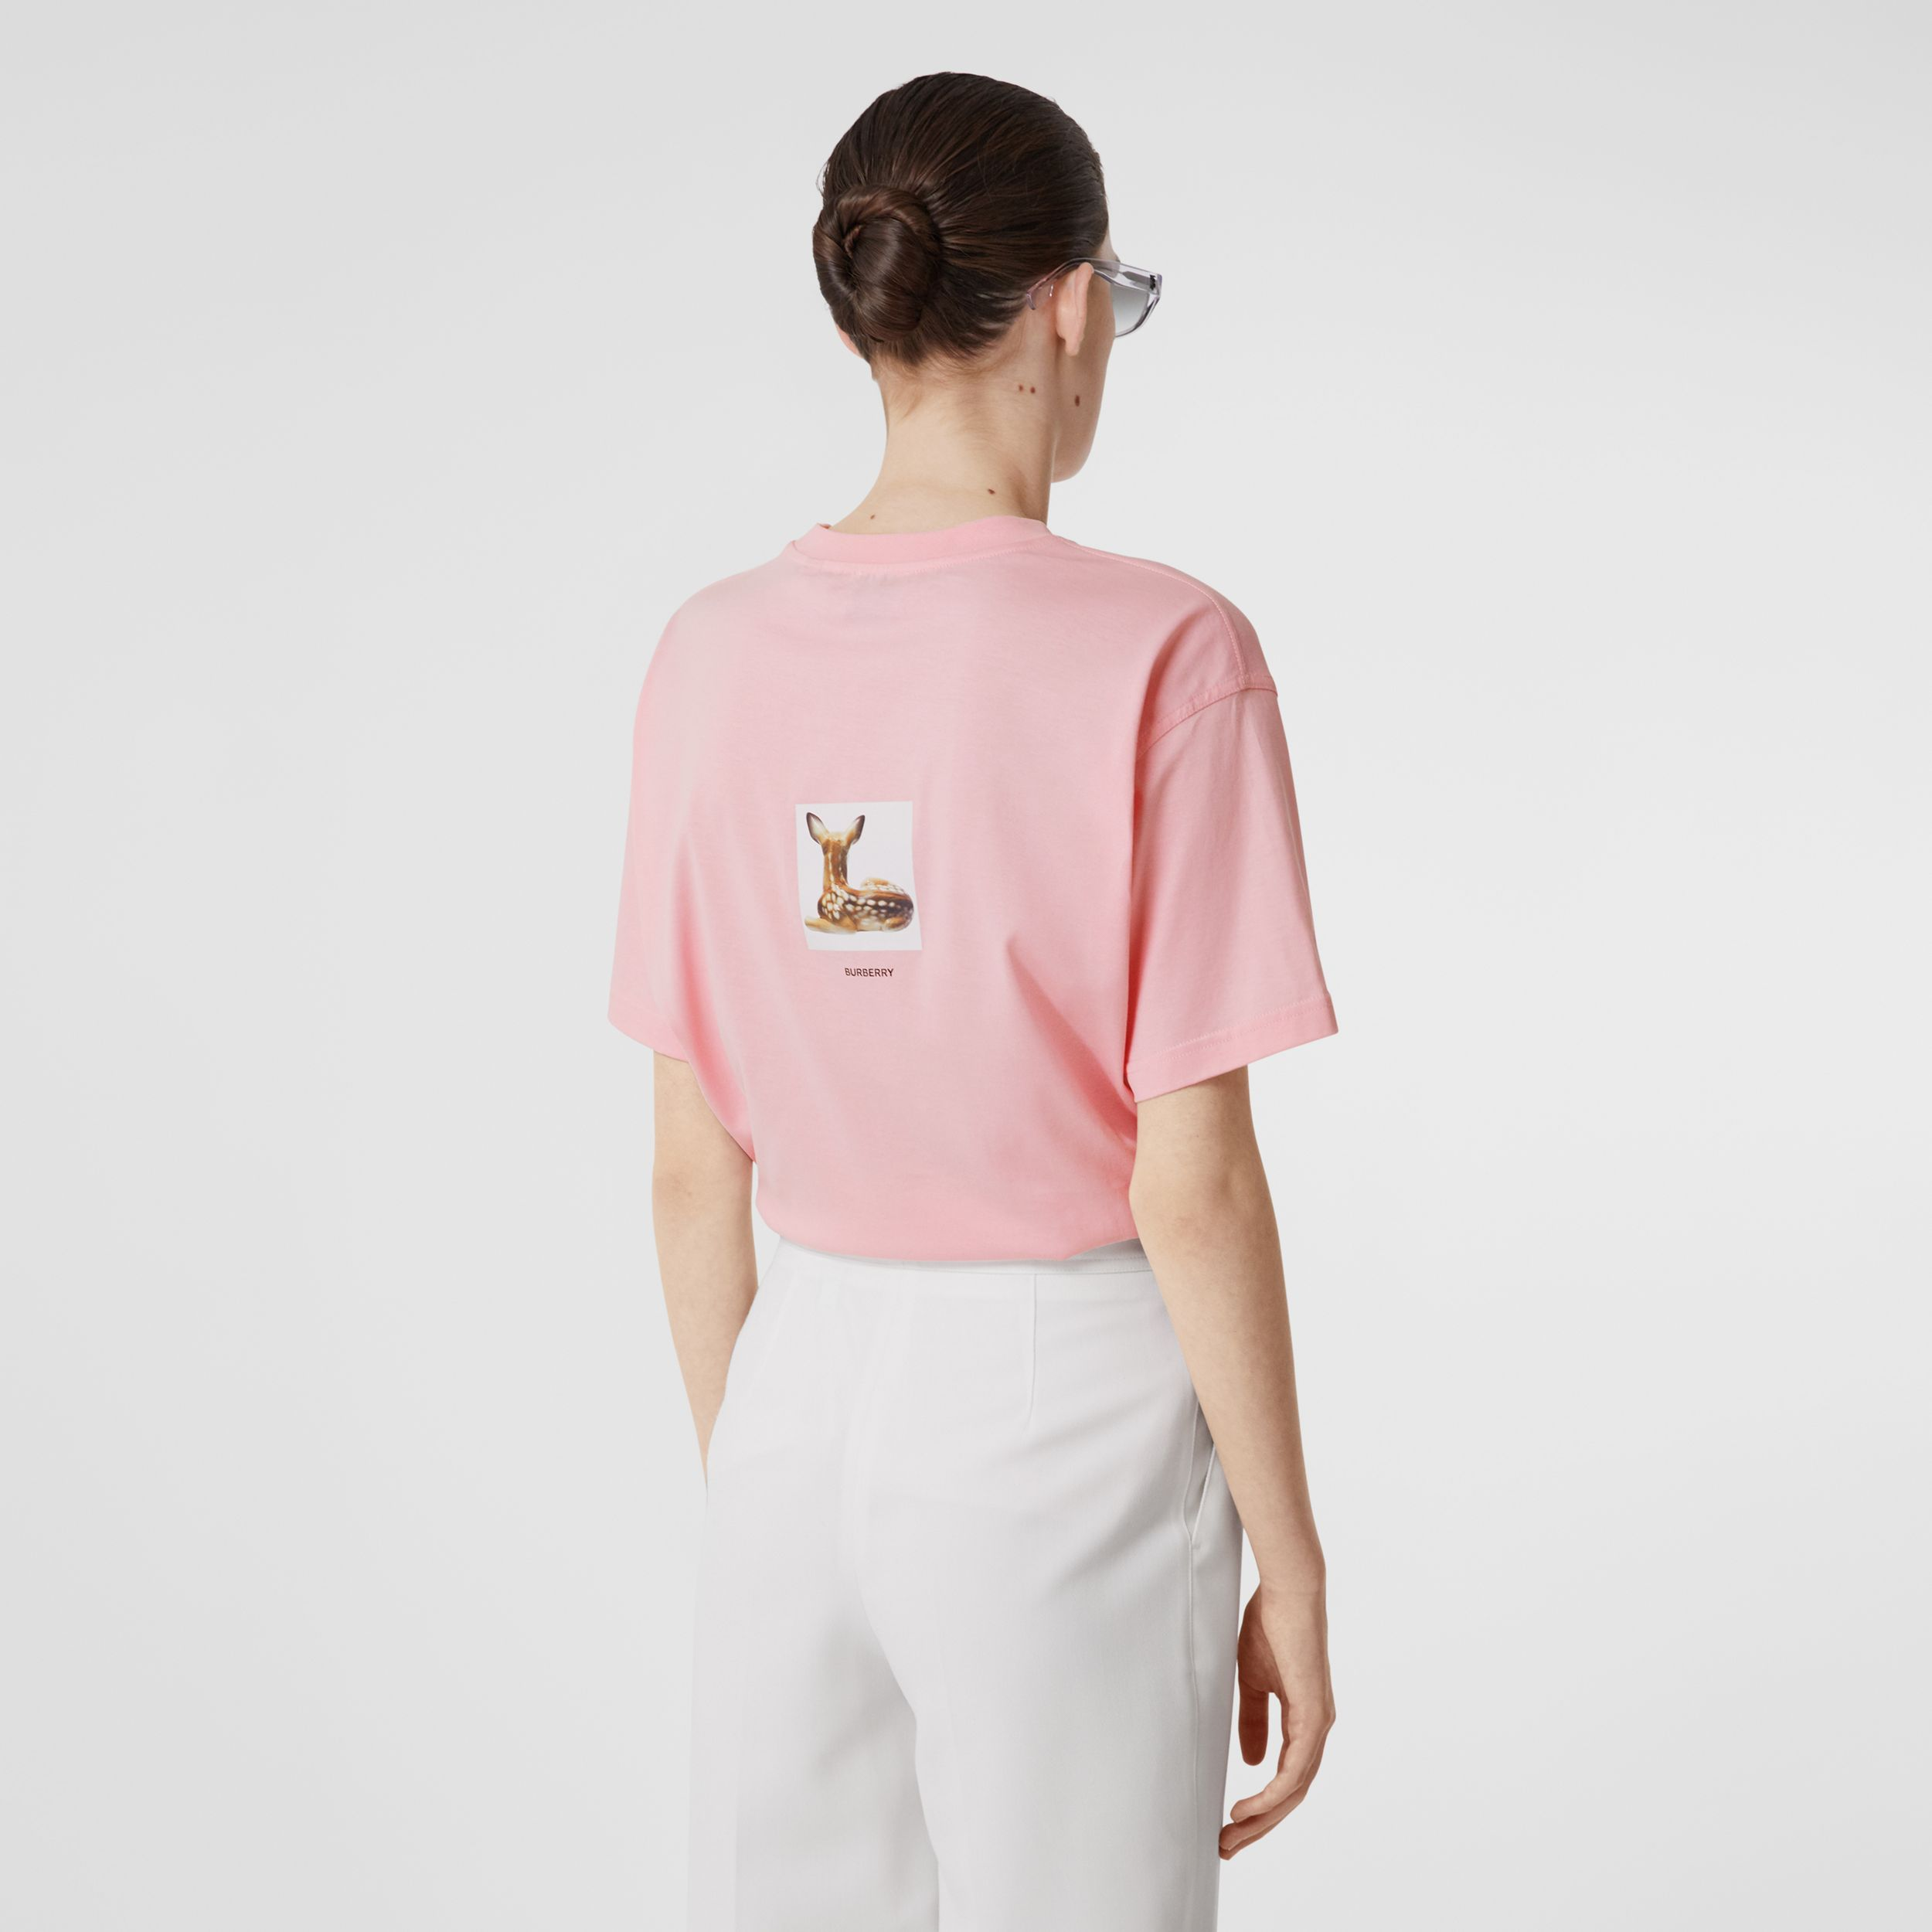 Deer Print Cotton T-shirt in Candy Pink - Women | Burberry Canada - 3